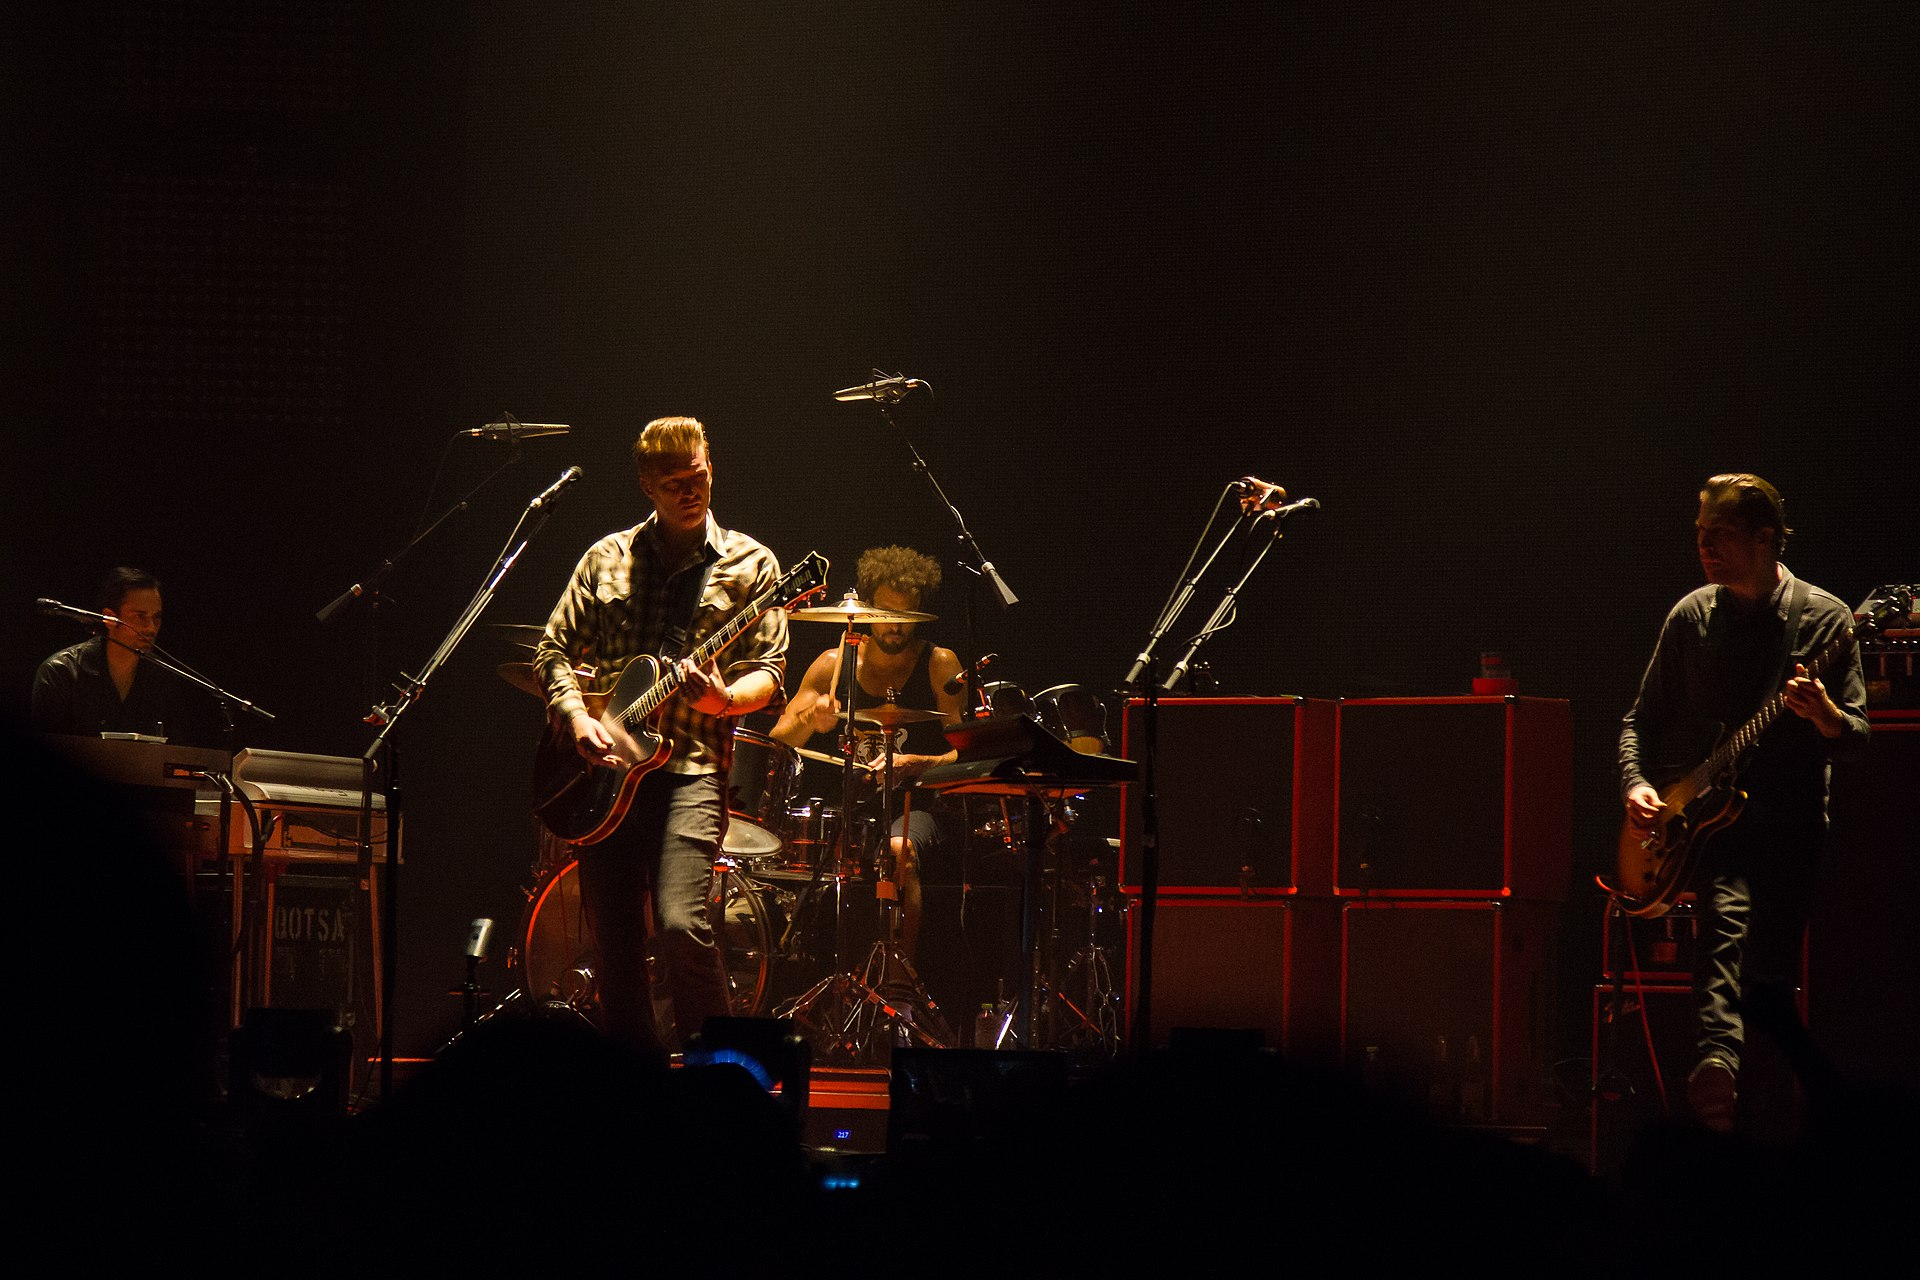 Queens of the stone age like clockwork